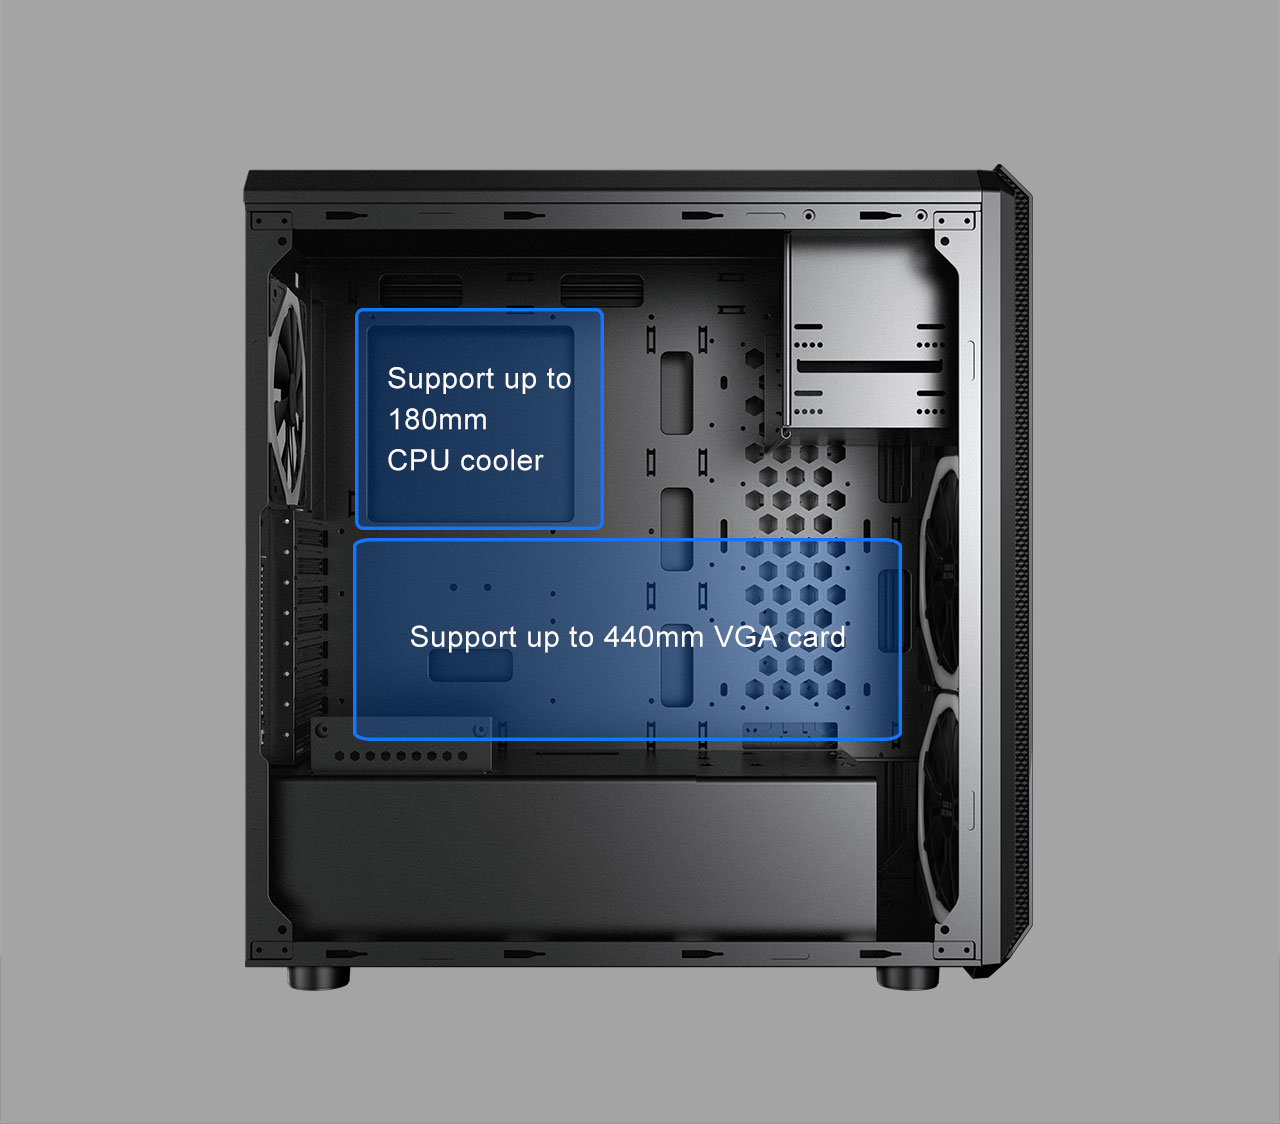 Case with its side panel removed with graphics and text indicating where the CPU cooler and graphics card can be installed